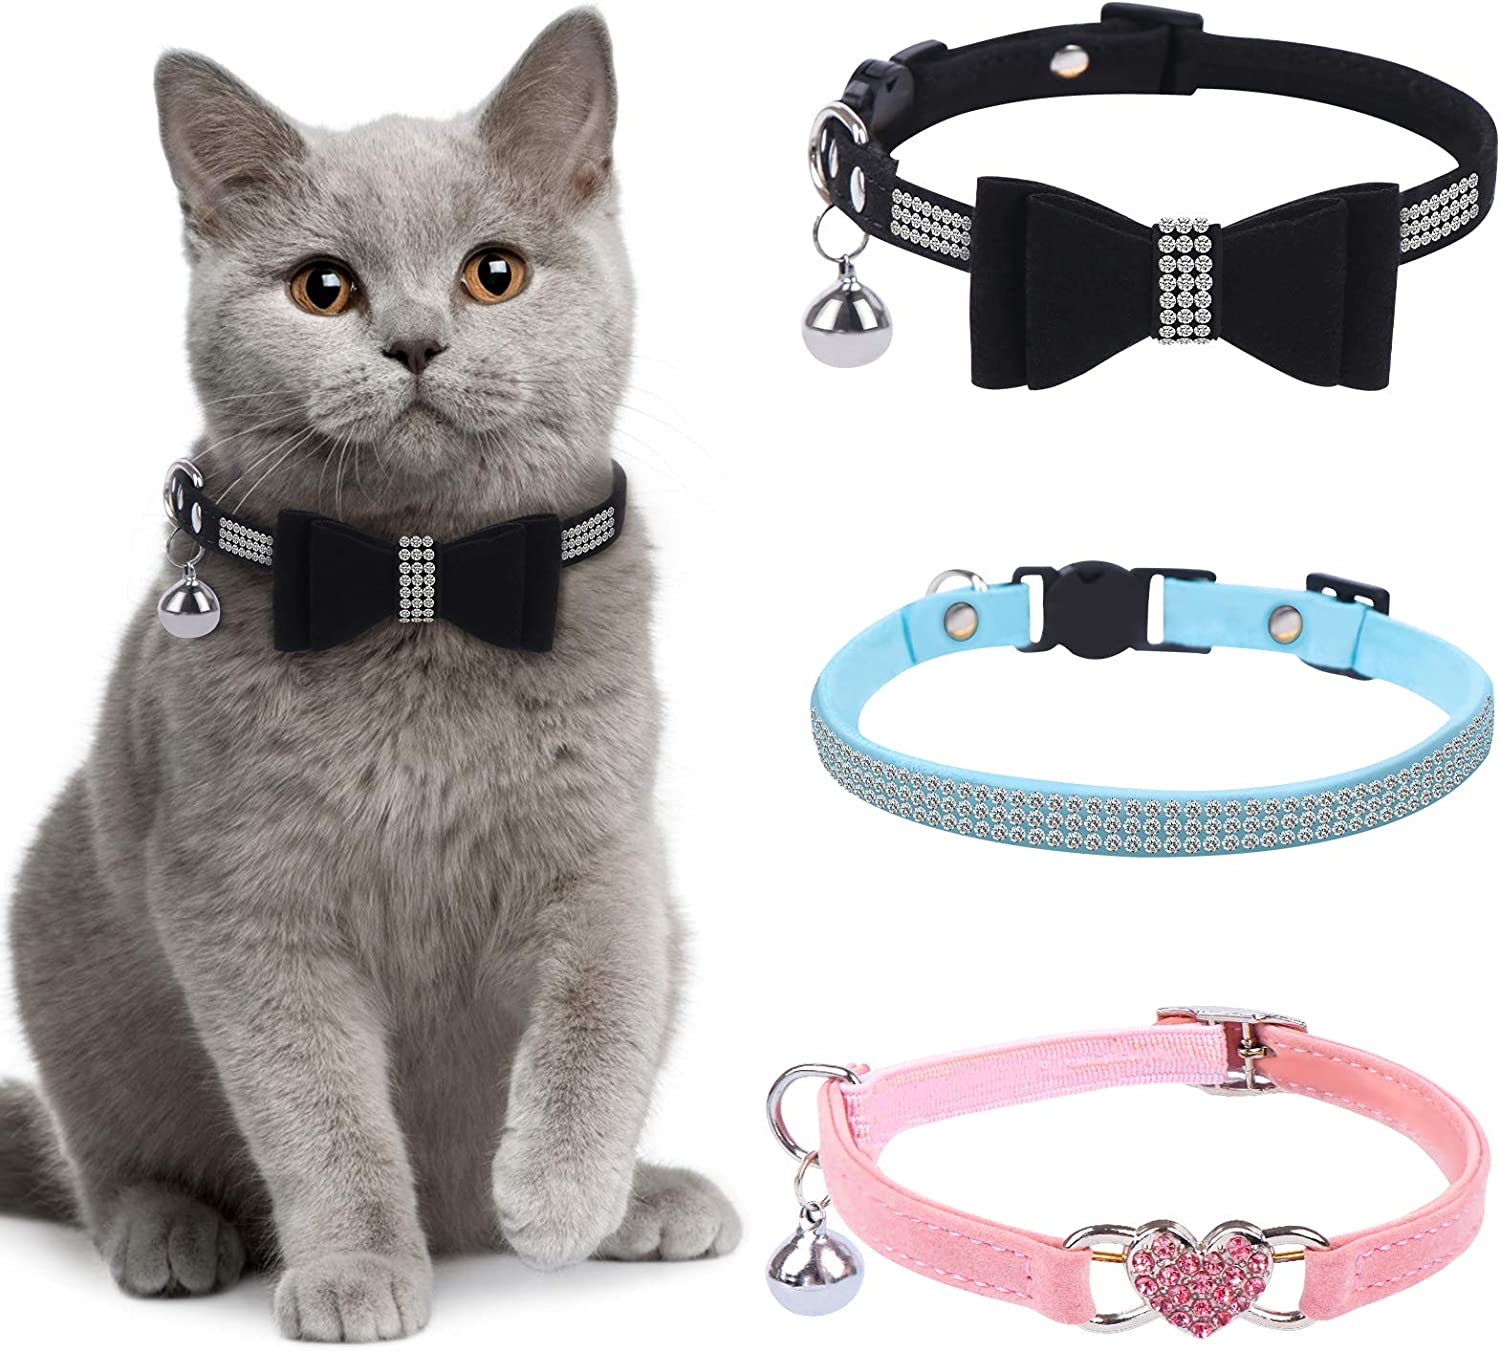 3 Max 40% OFF Cheap Sale 44% OFF Pieces Rhinestones Cat Collars with Bling Collar Breakaway